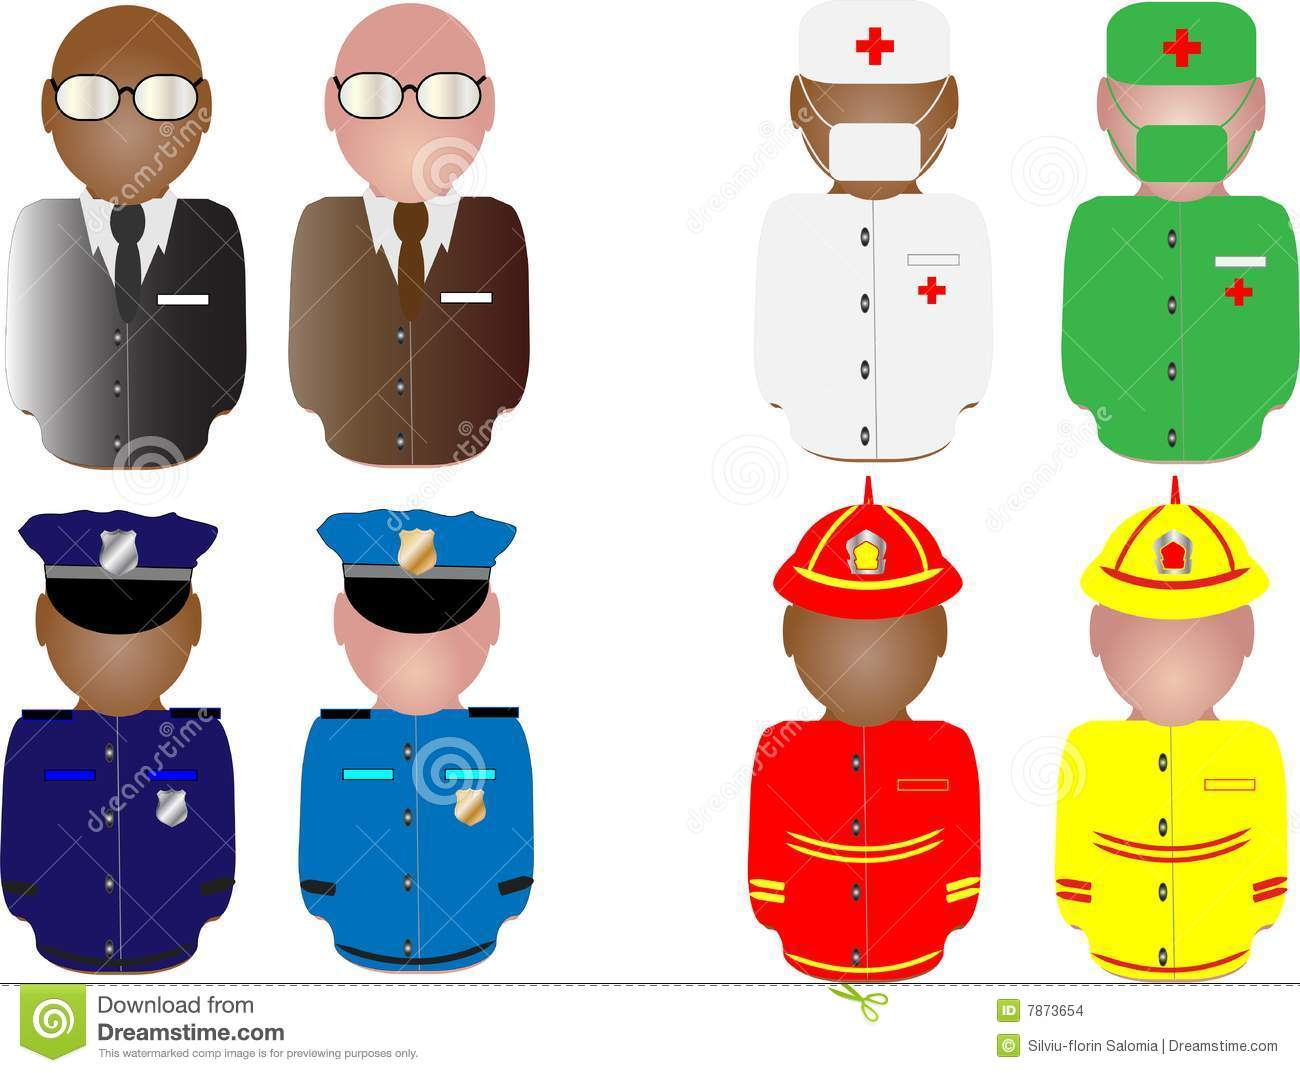 Work Uniforms Clipart People In Working -Work Uniforms Clipart People In Working Uniform-18